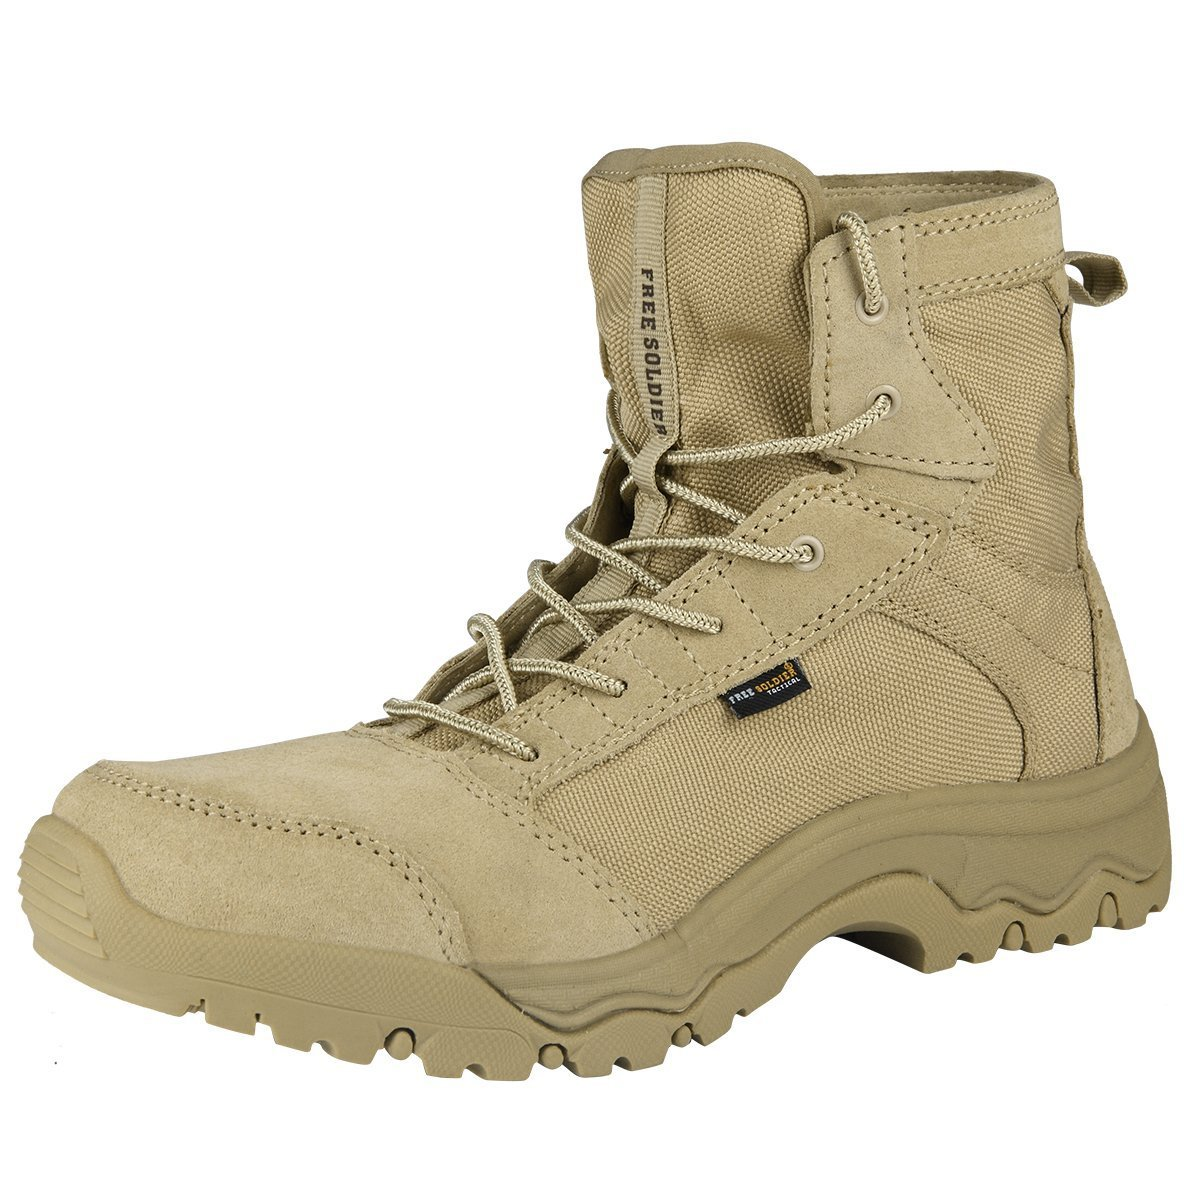 FREE SOLDIER Men's Lightweight Tactical Boots - Desert Tan F & S Co. Ltd